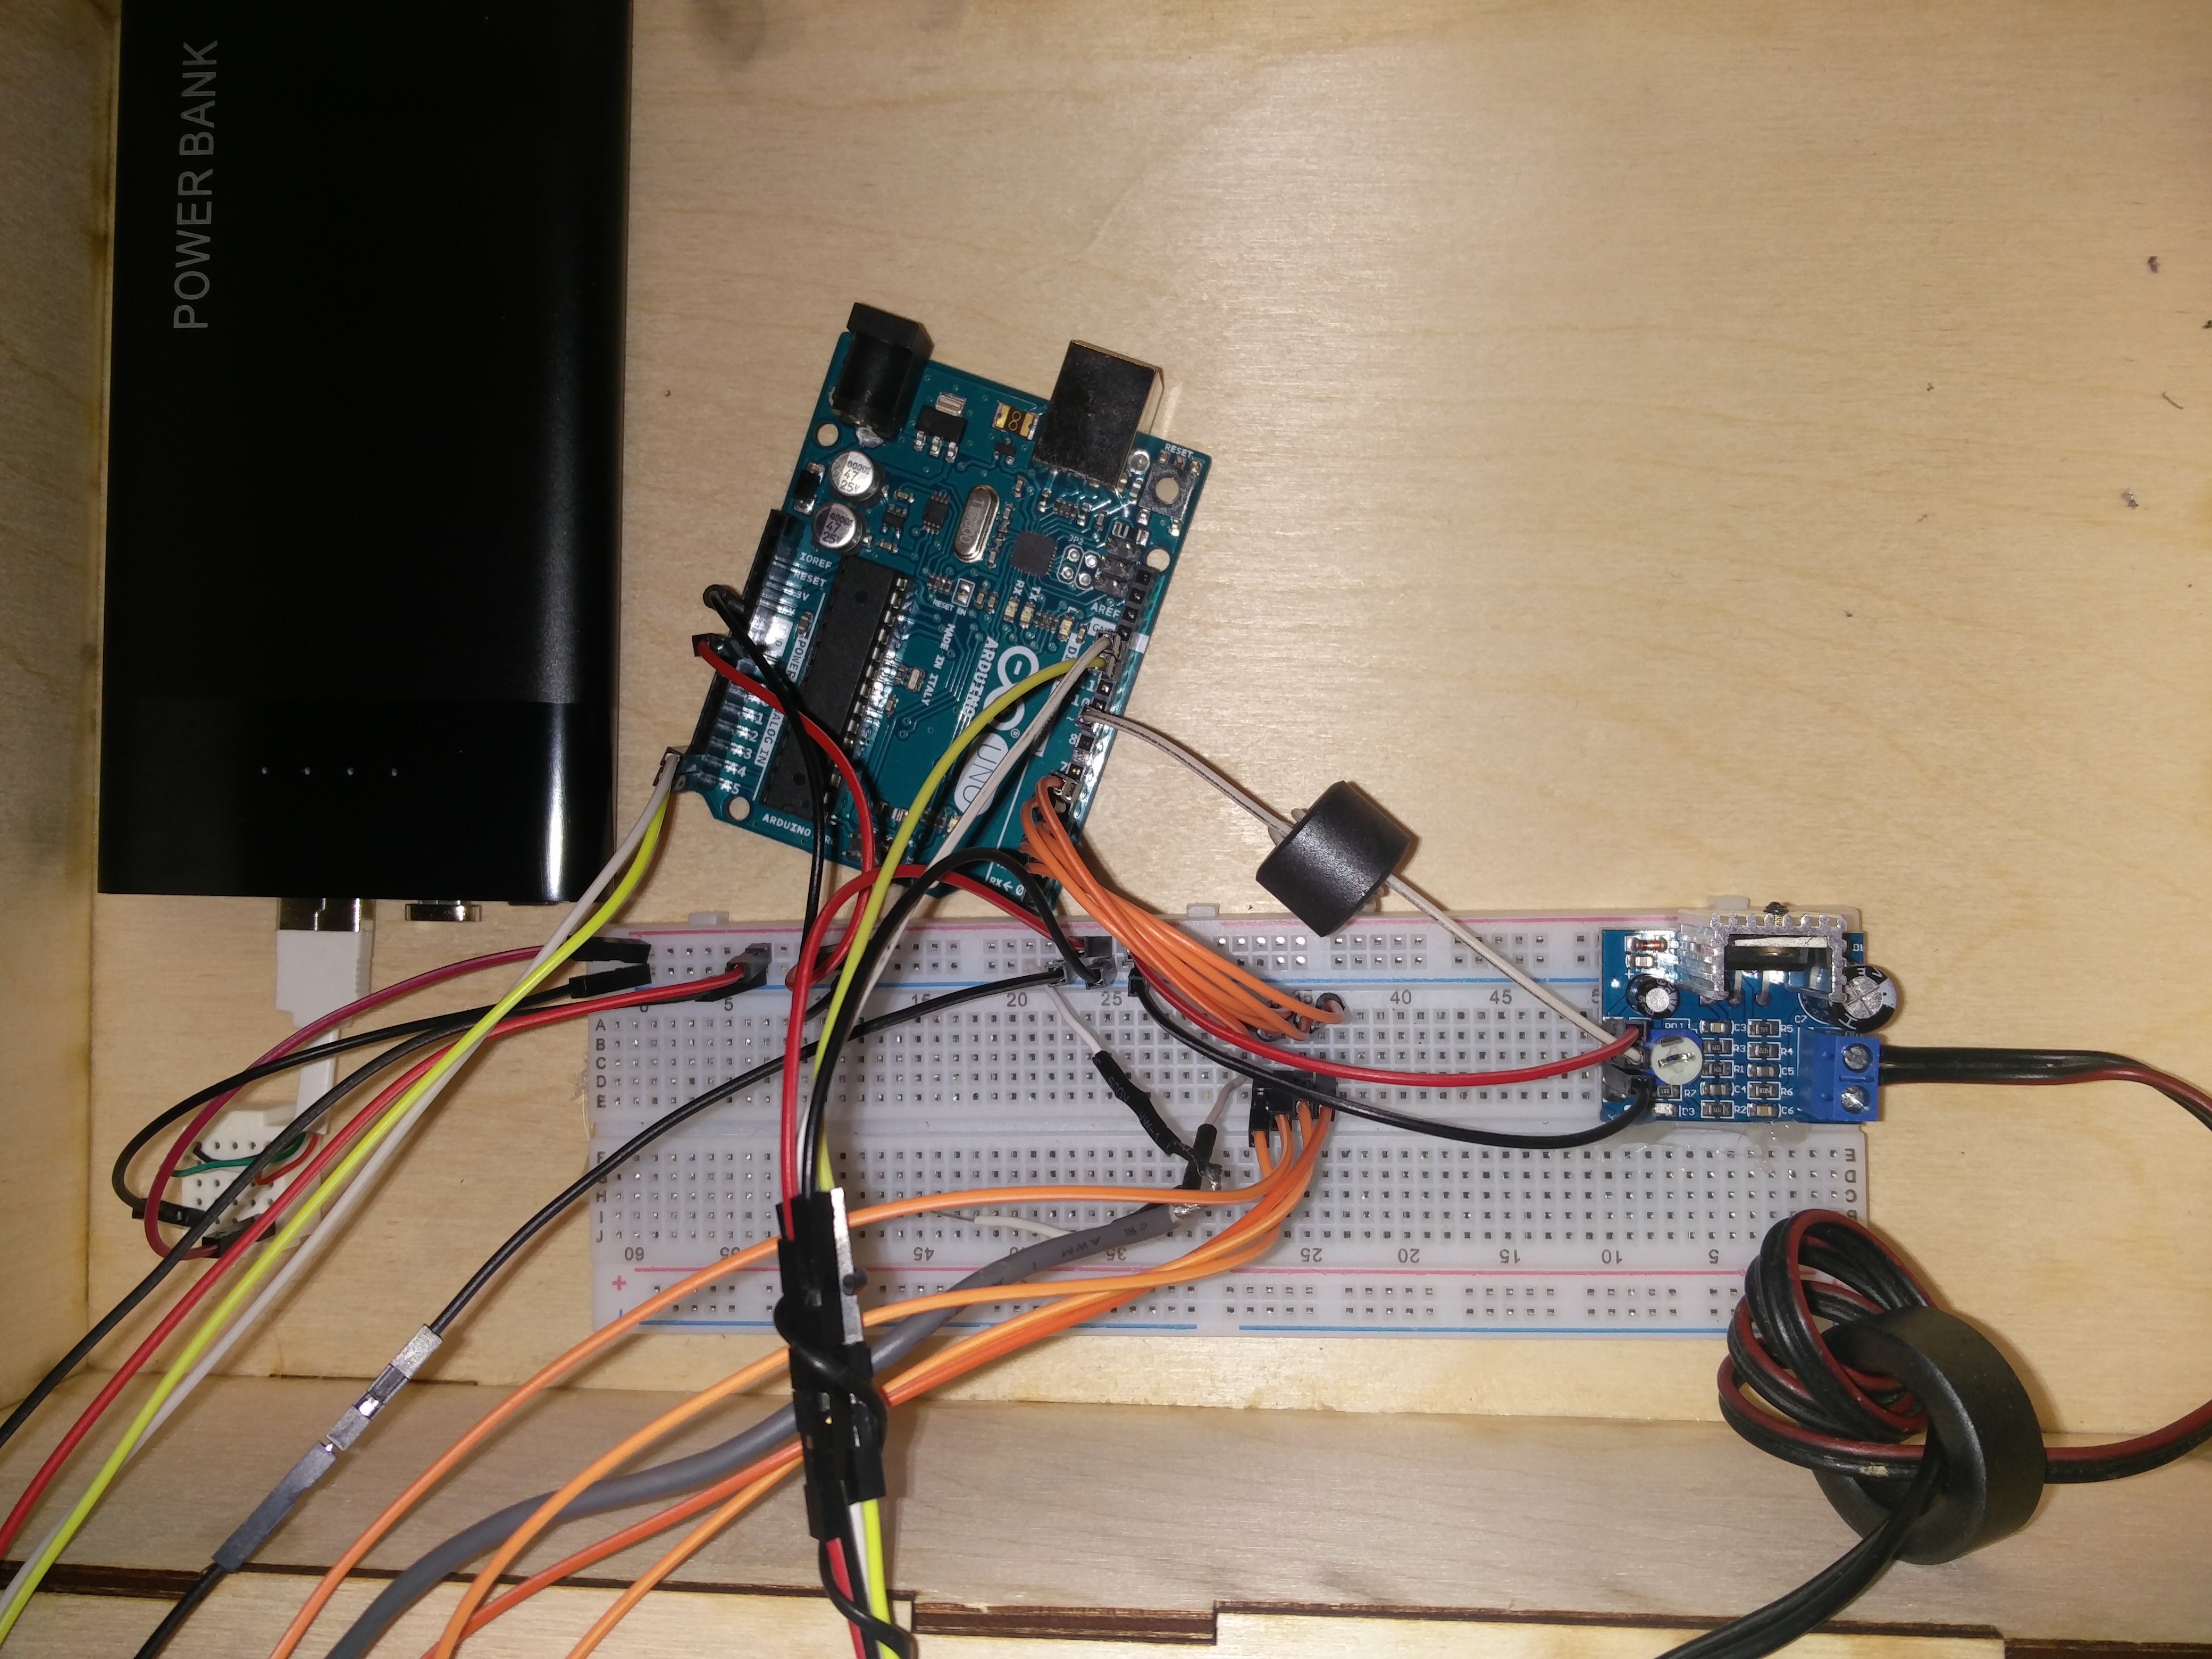 Picture of Assembling the Components (testing Phase)